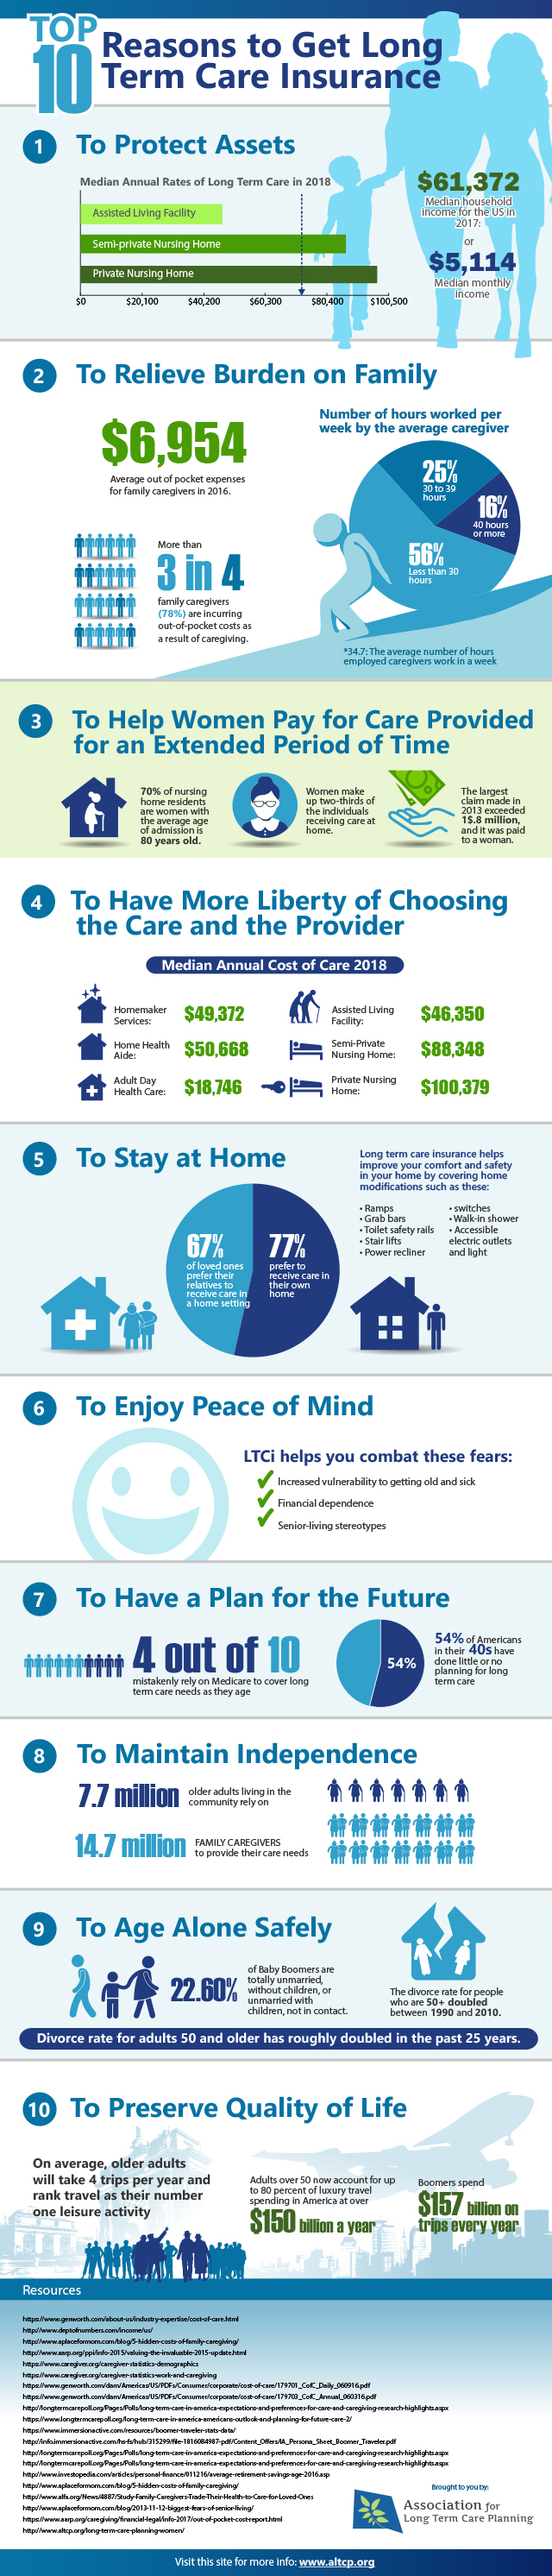 Top 10 Reasons to Get Long Term Care Insurance